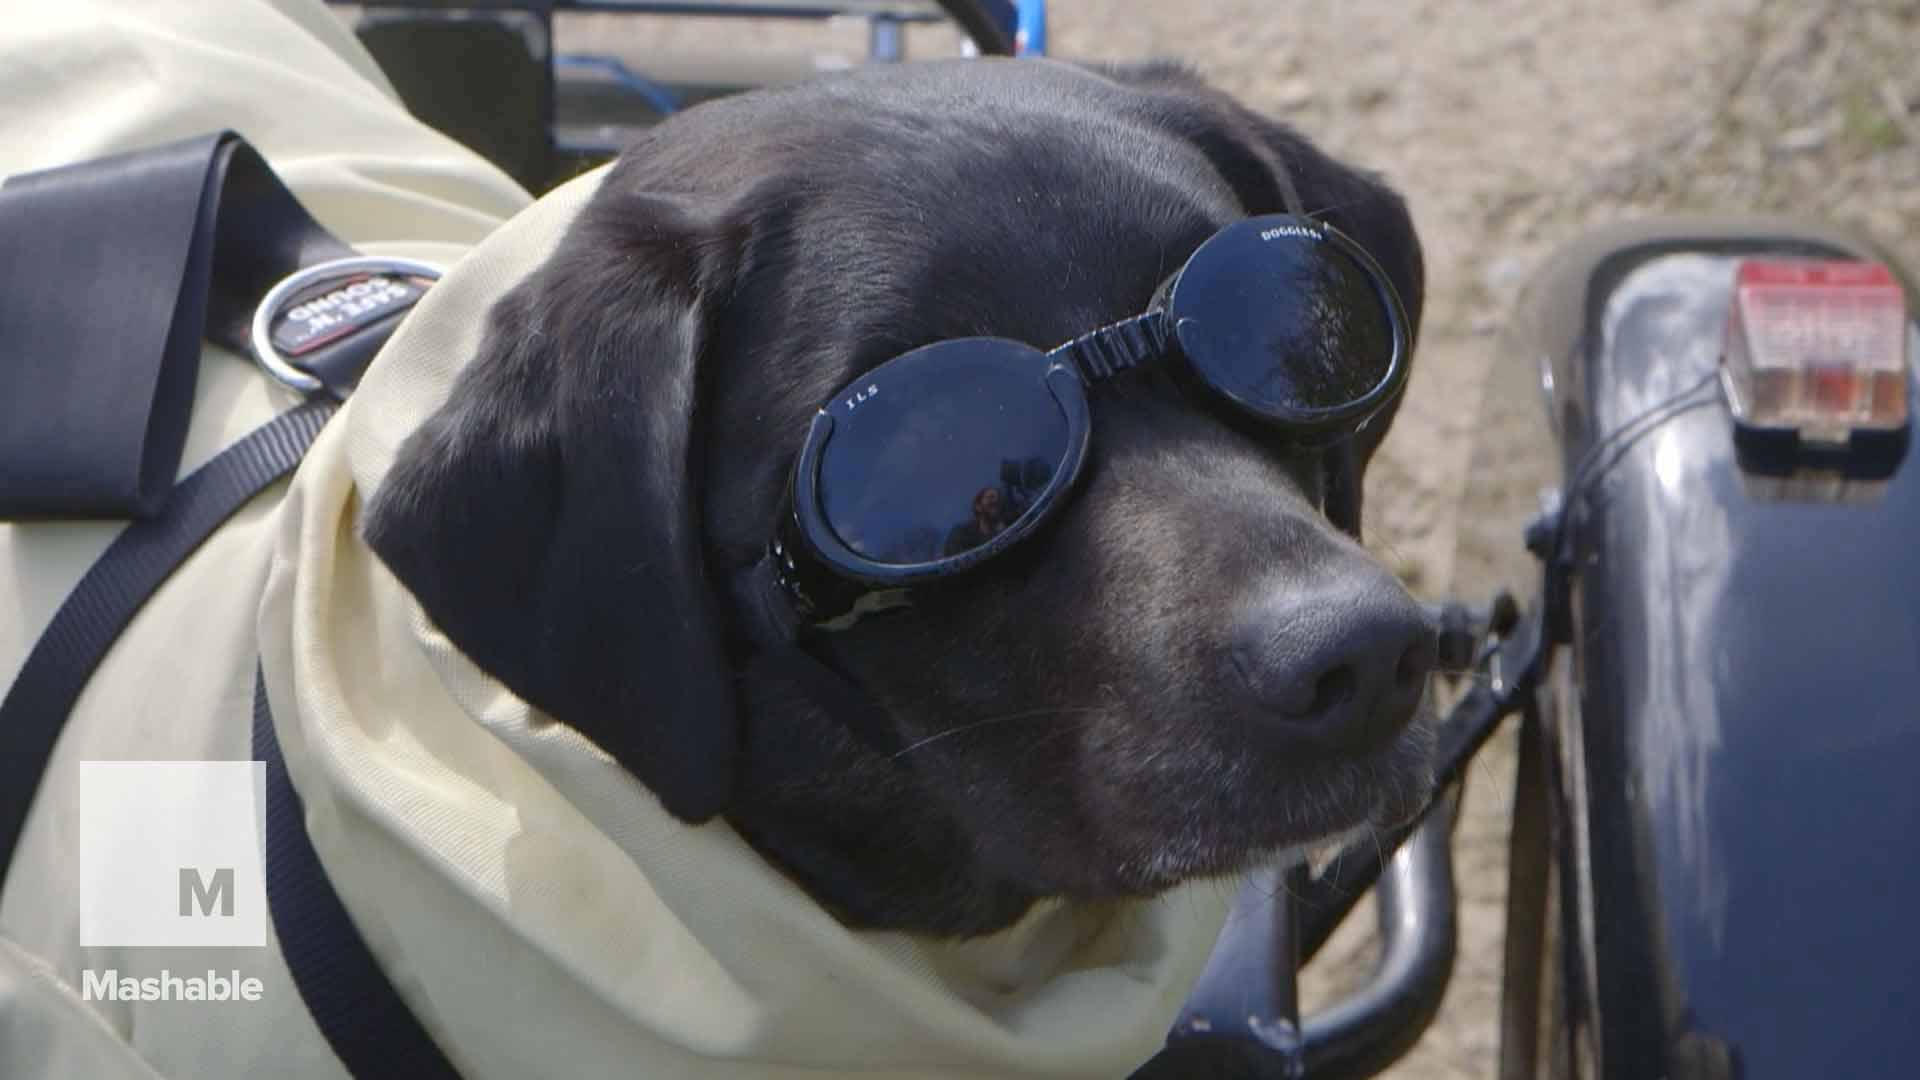 Motorcycling dog gets first four-legged Kevlar bike suit